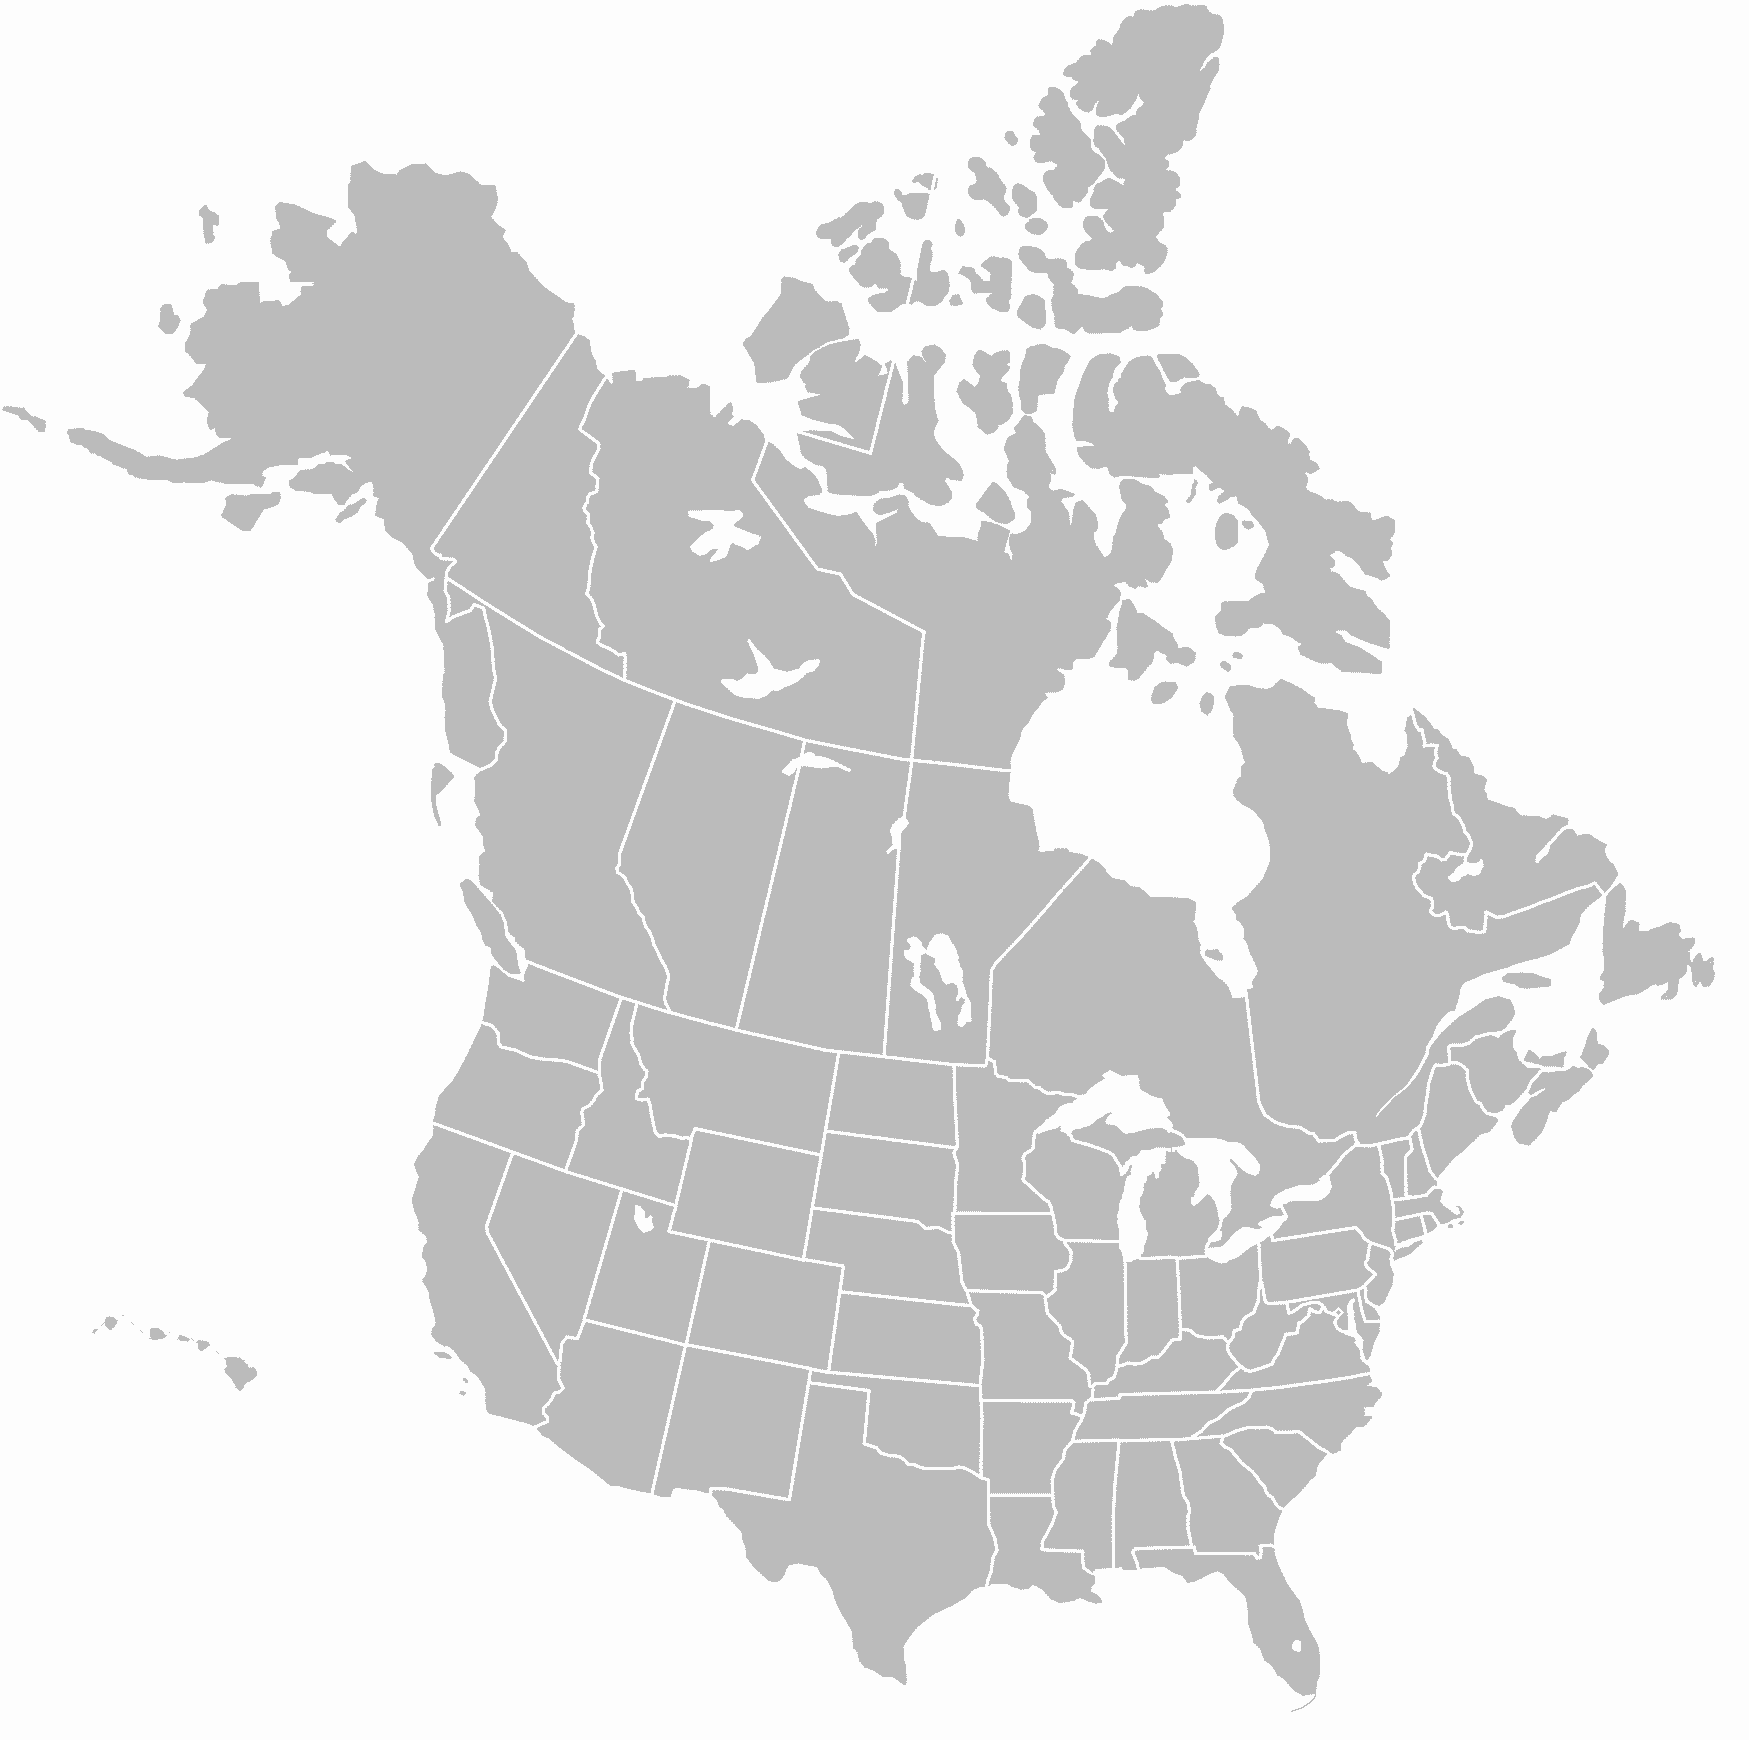 FileNorth America Blank Map With State And Province Boundaries - Blank map of the united states wikipedia